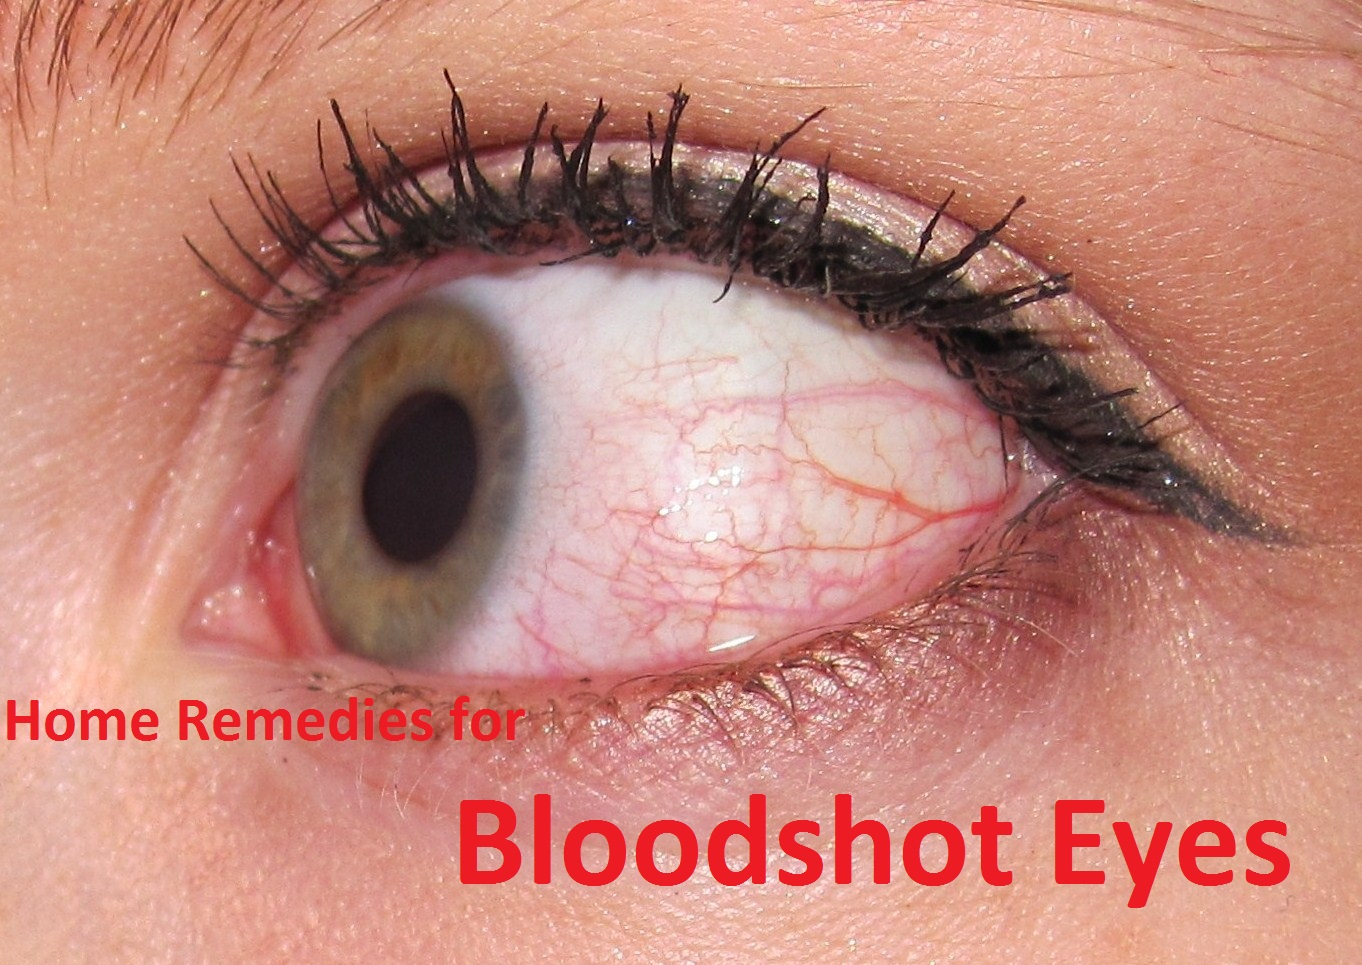 Home remedies for bloodshot eyes